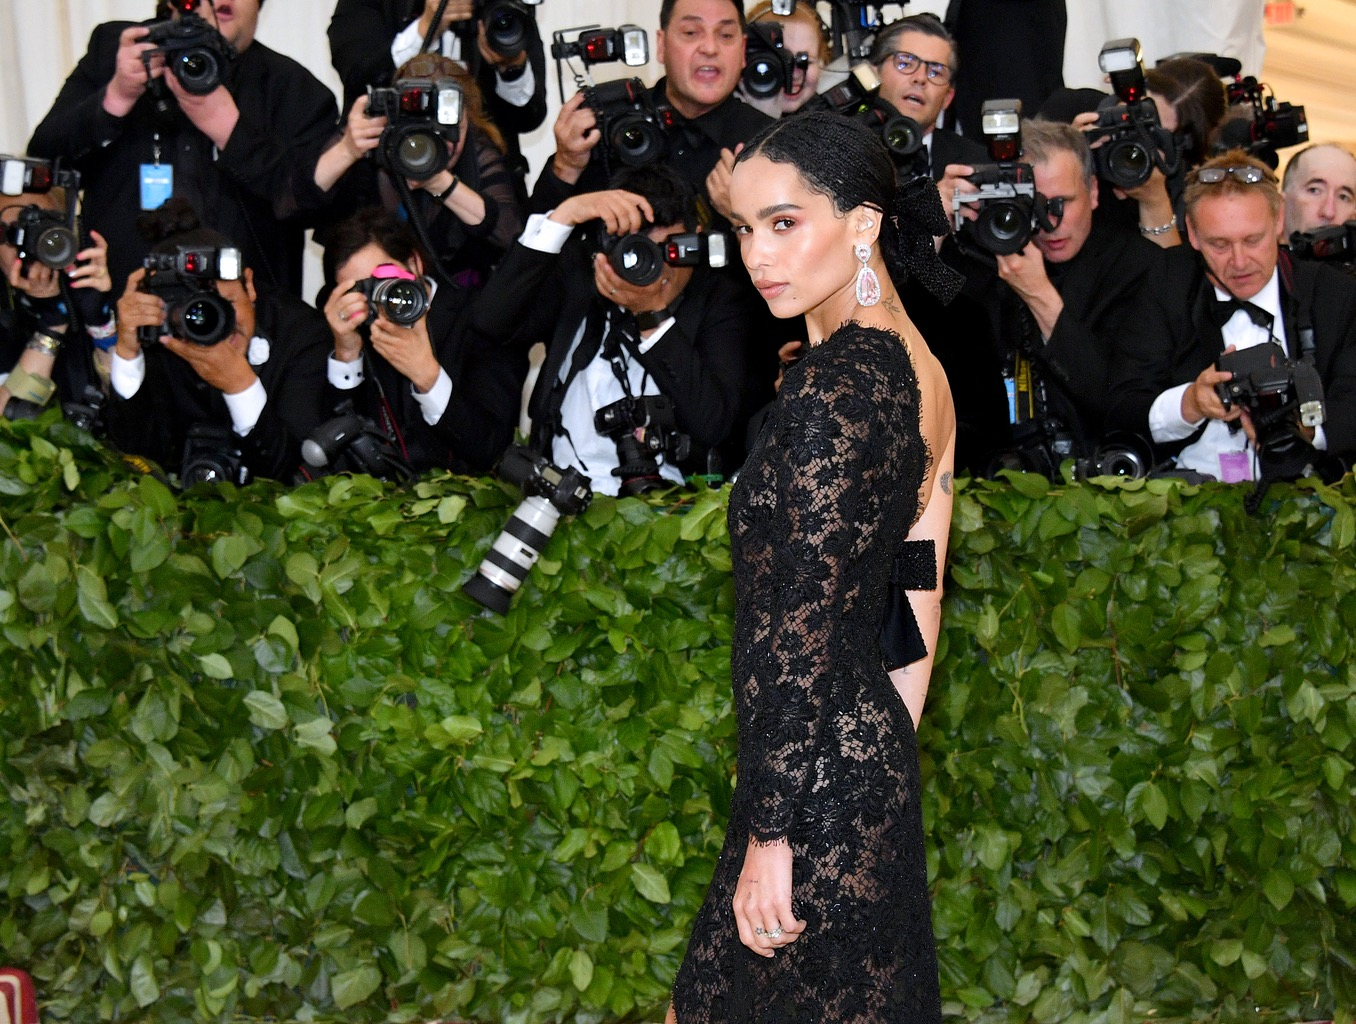 Zoë Kravitz on the red carpet at the 2018 MET Gala in May wearing her engagement ring as well as earrings form Jacob & Co. and a Yves Saint Laurent gown. Photo Getty